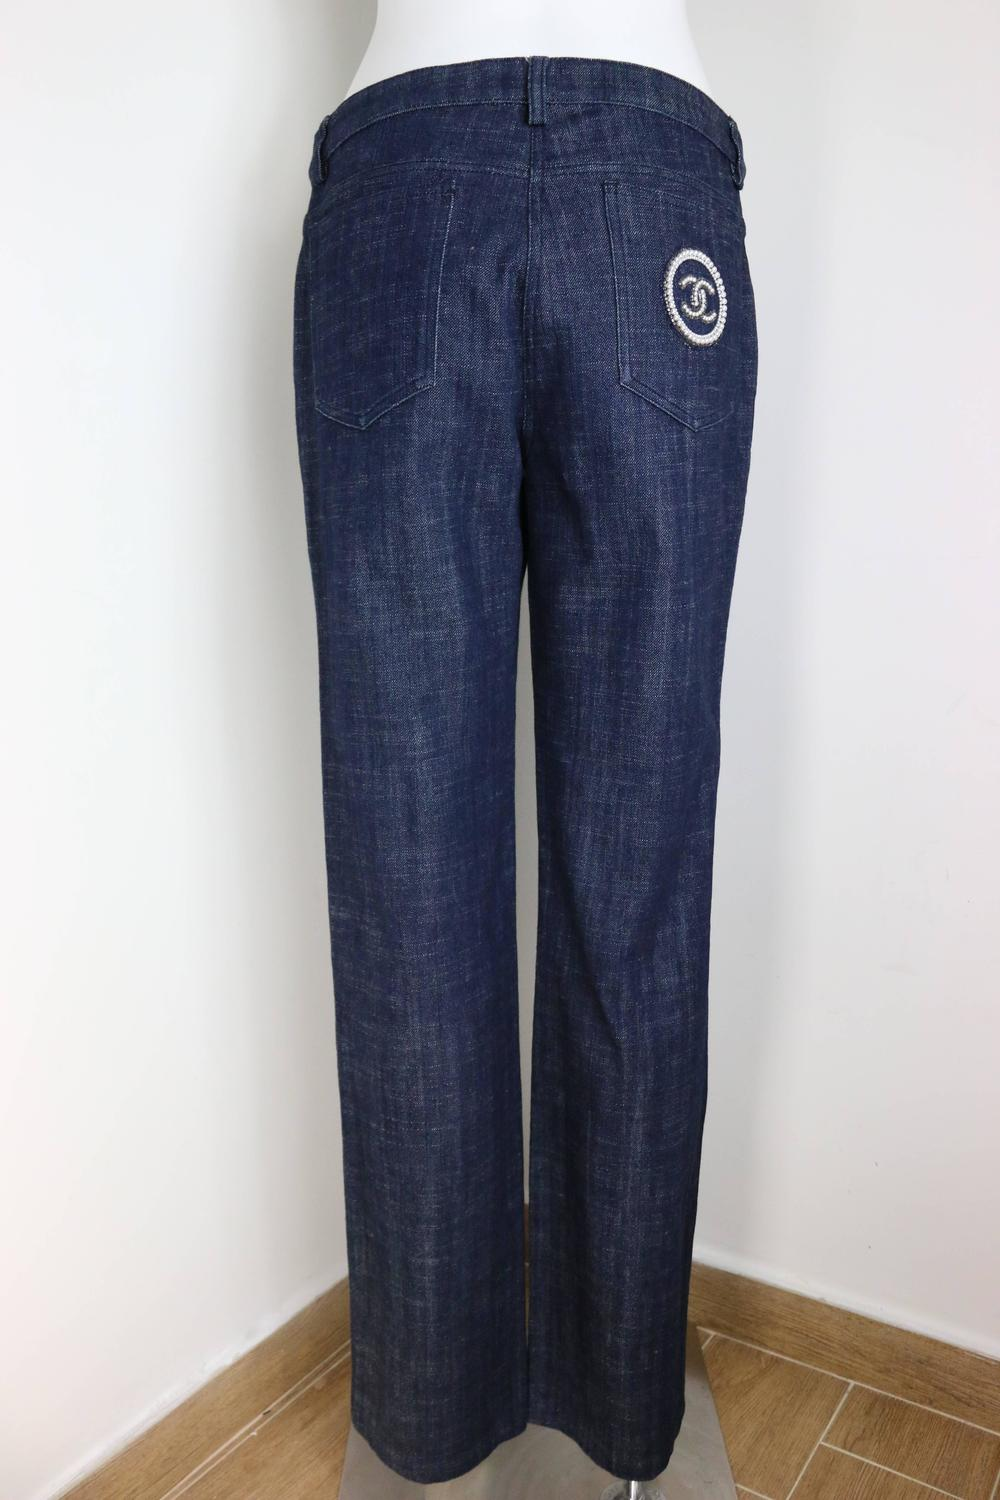 Chanel blue embroidered faux pearl denim jeans for sale at